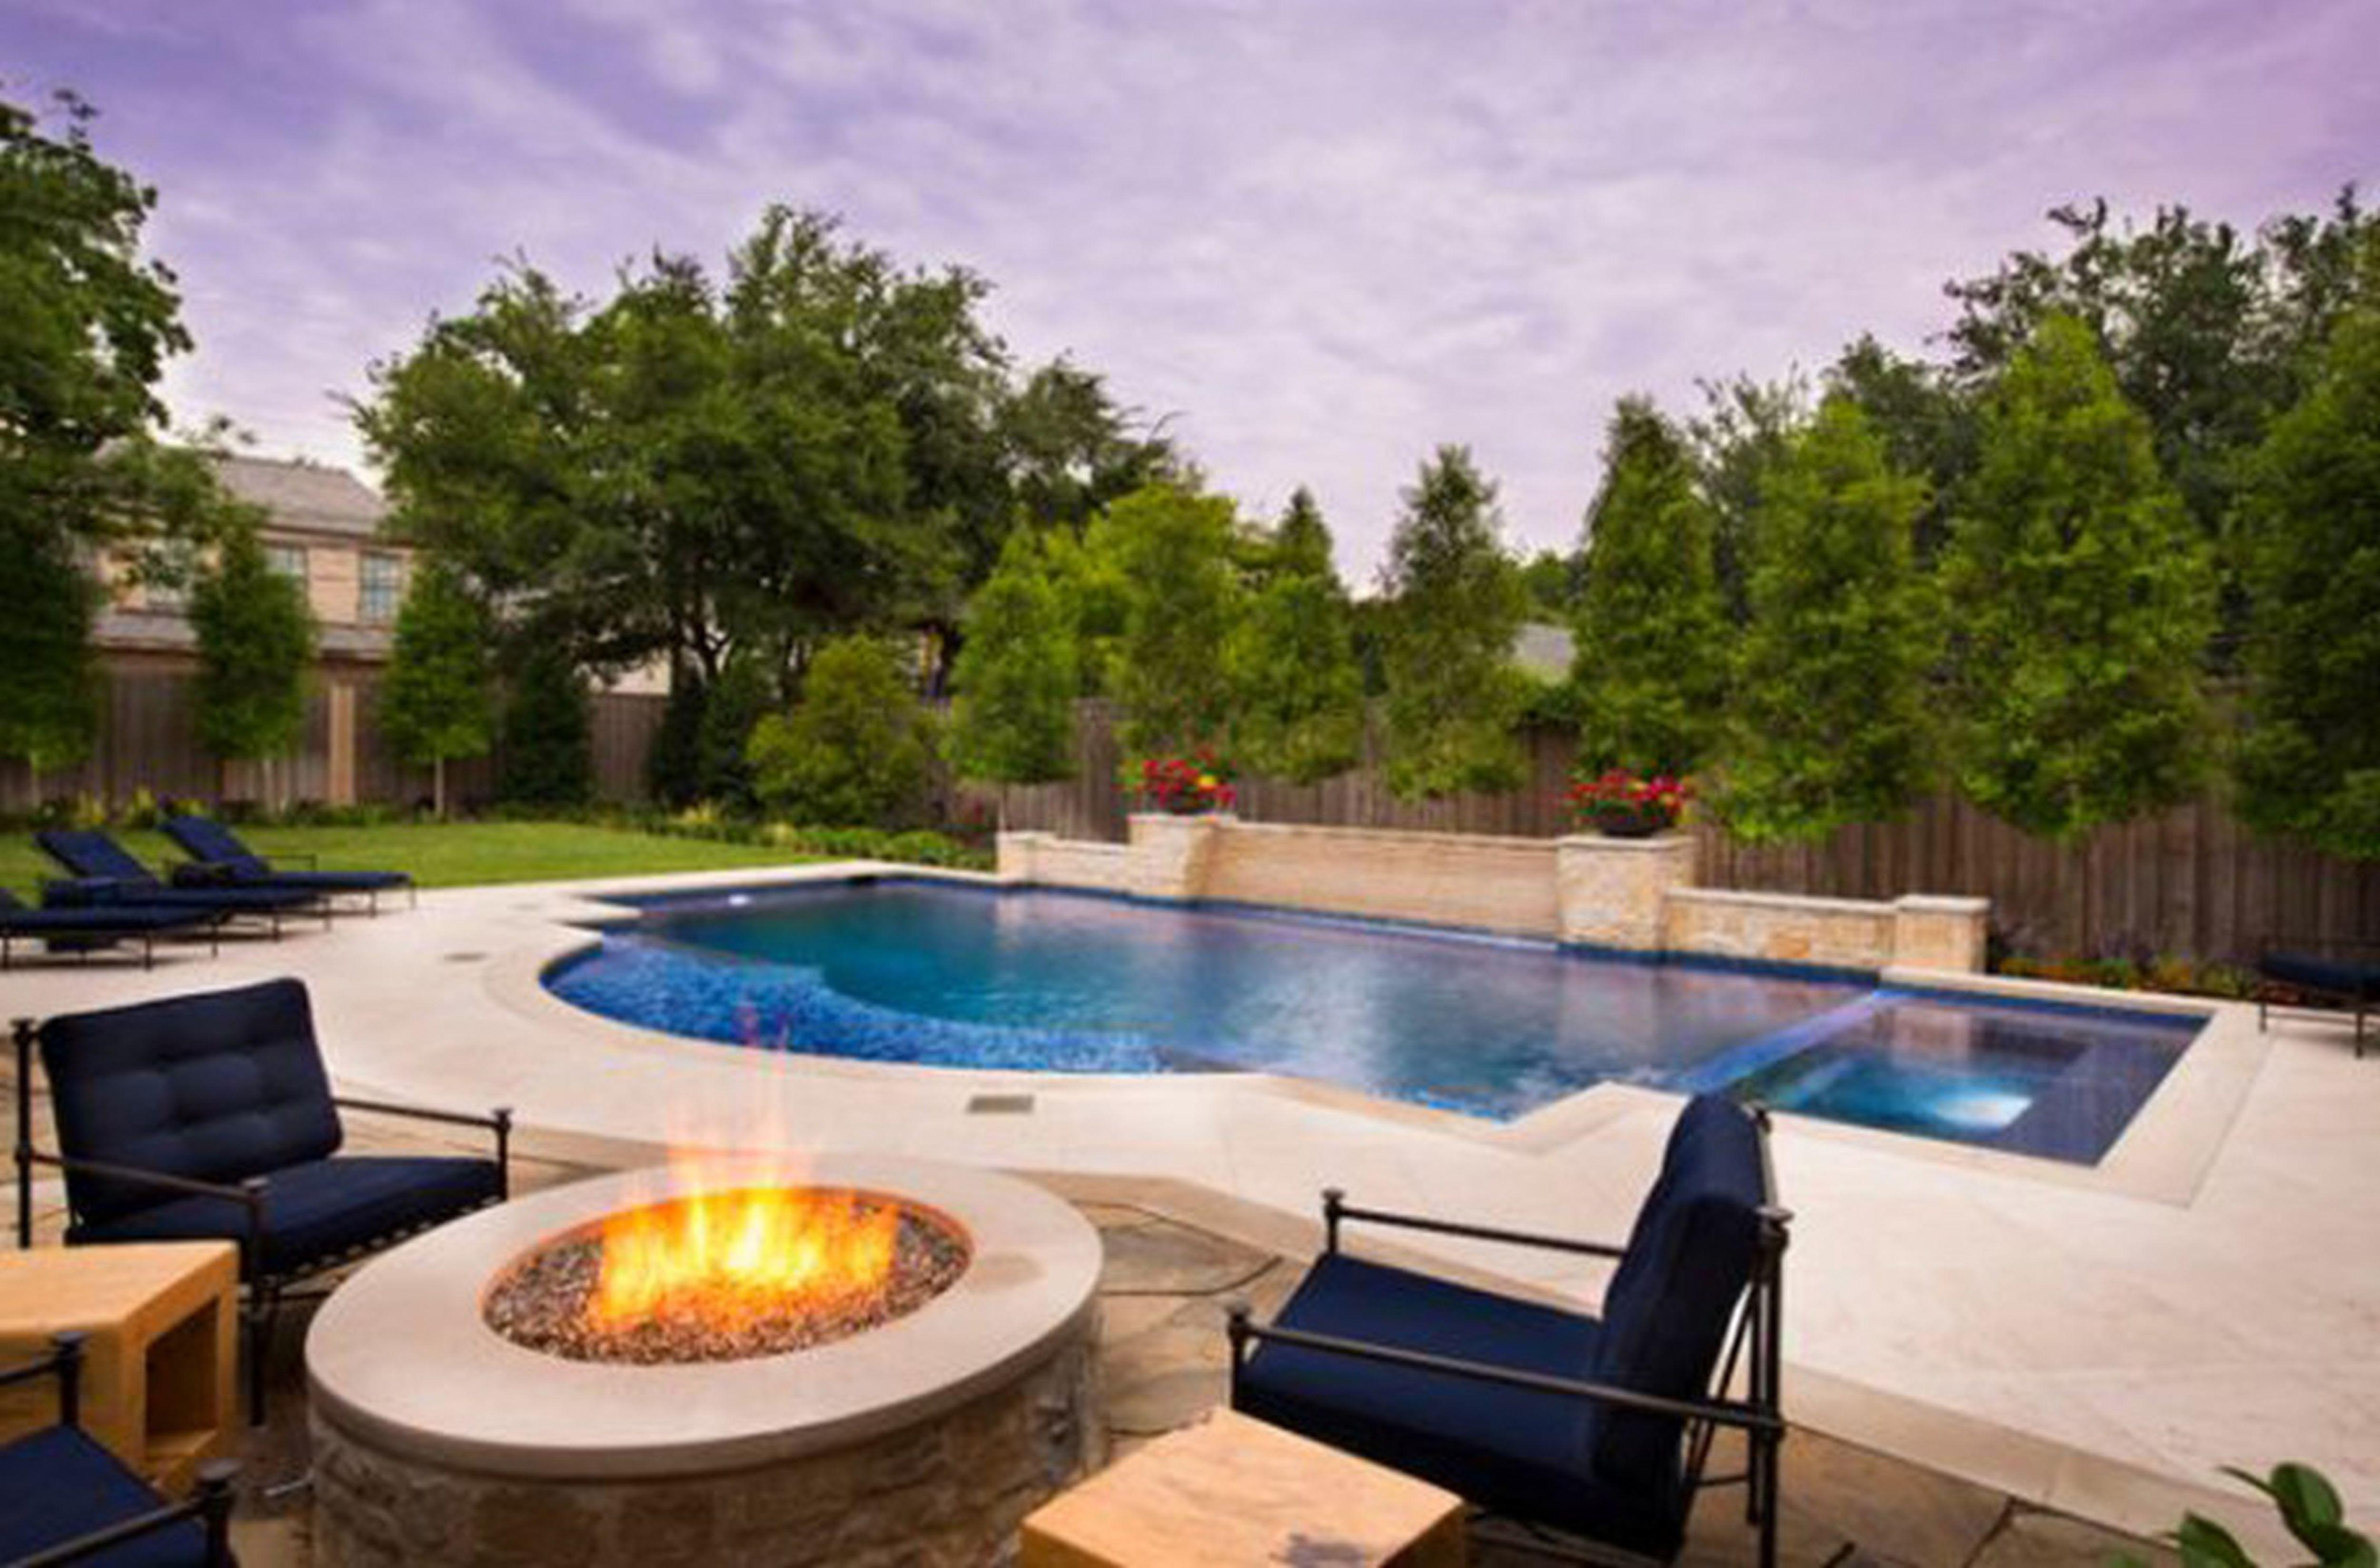 Pool ideas for a small backyard backyard design ideas for Pool ideas for small backyard